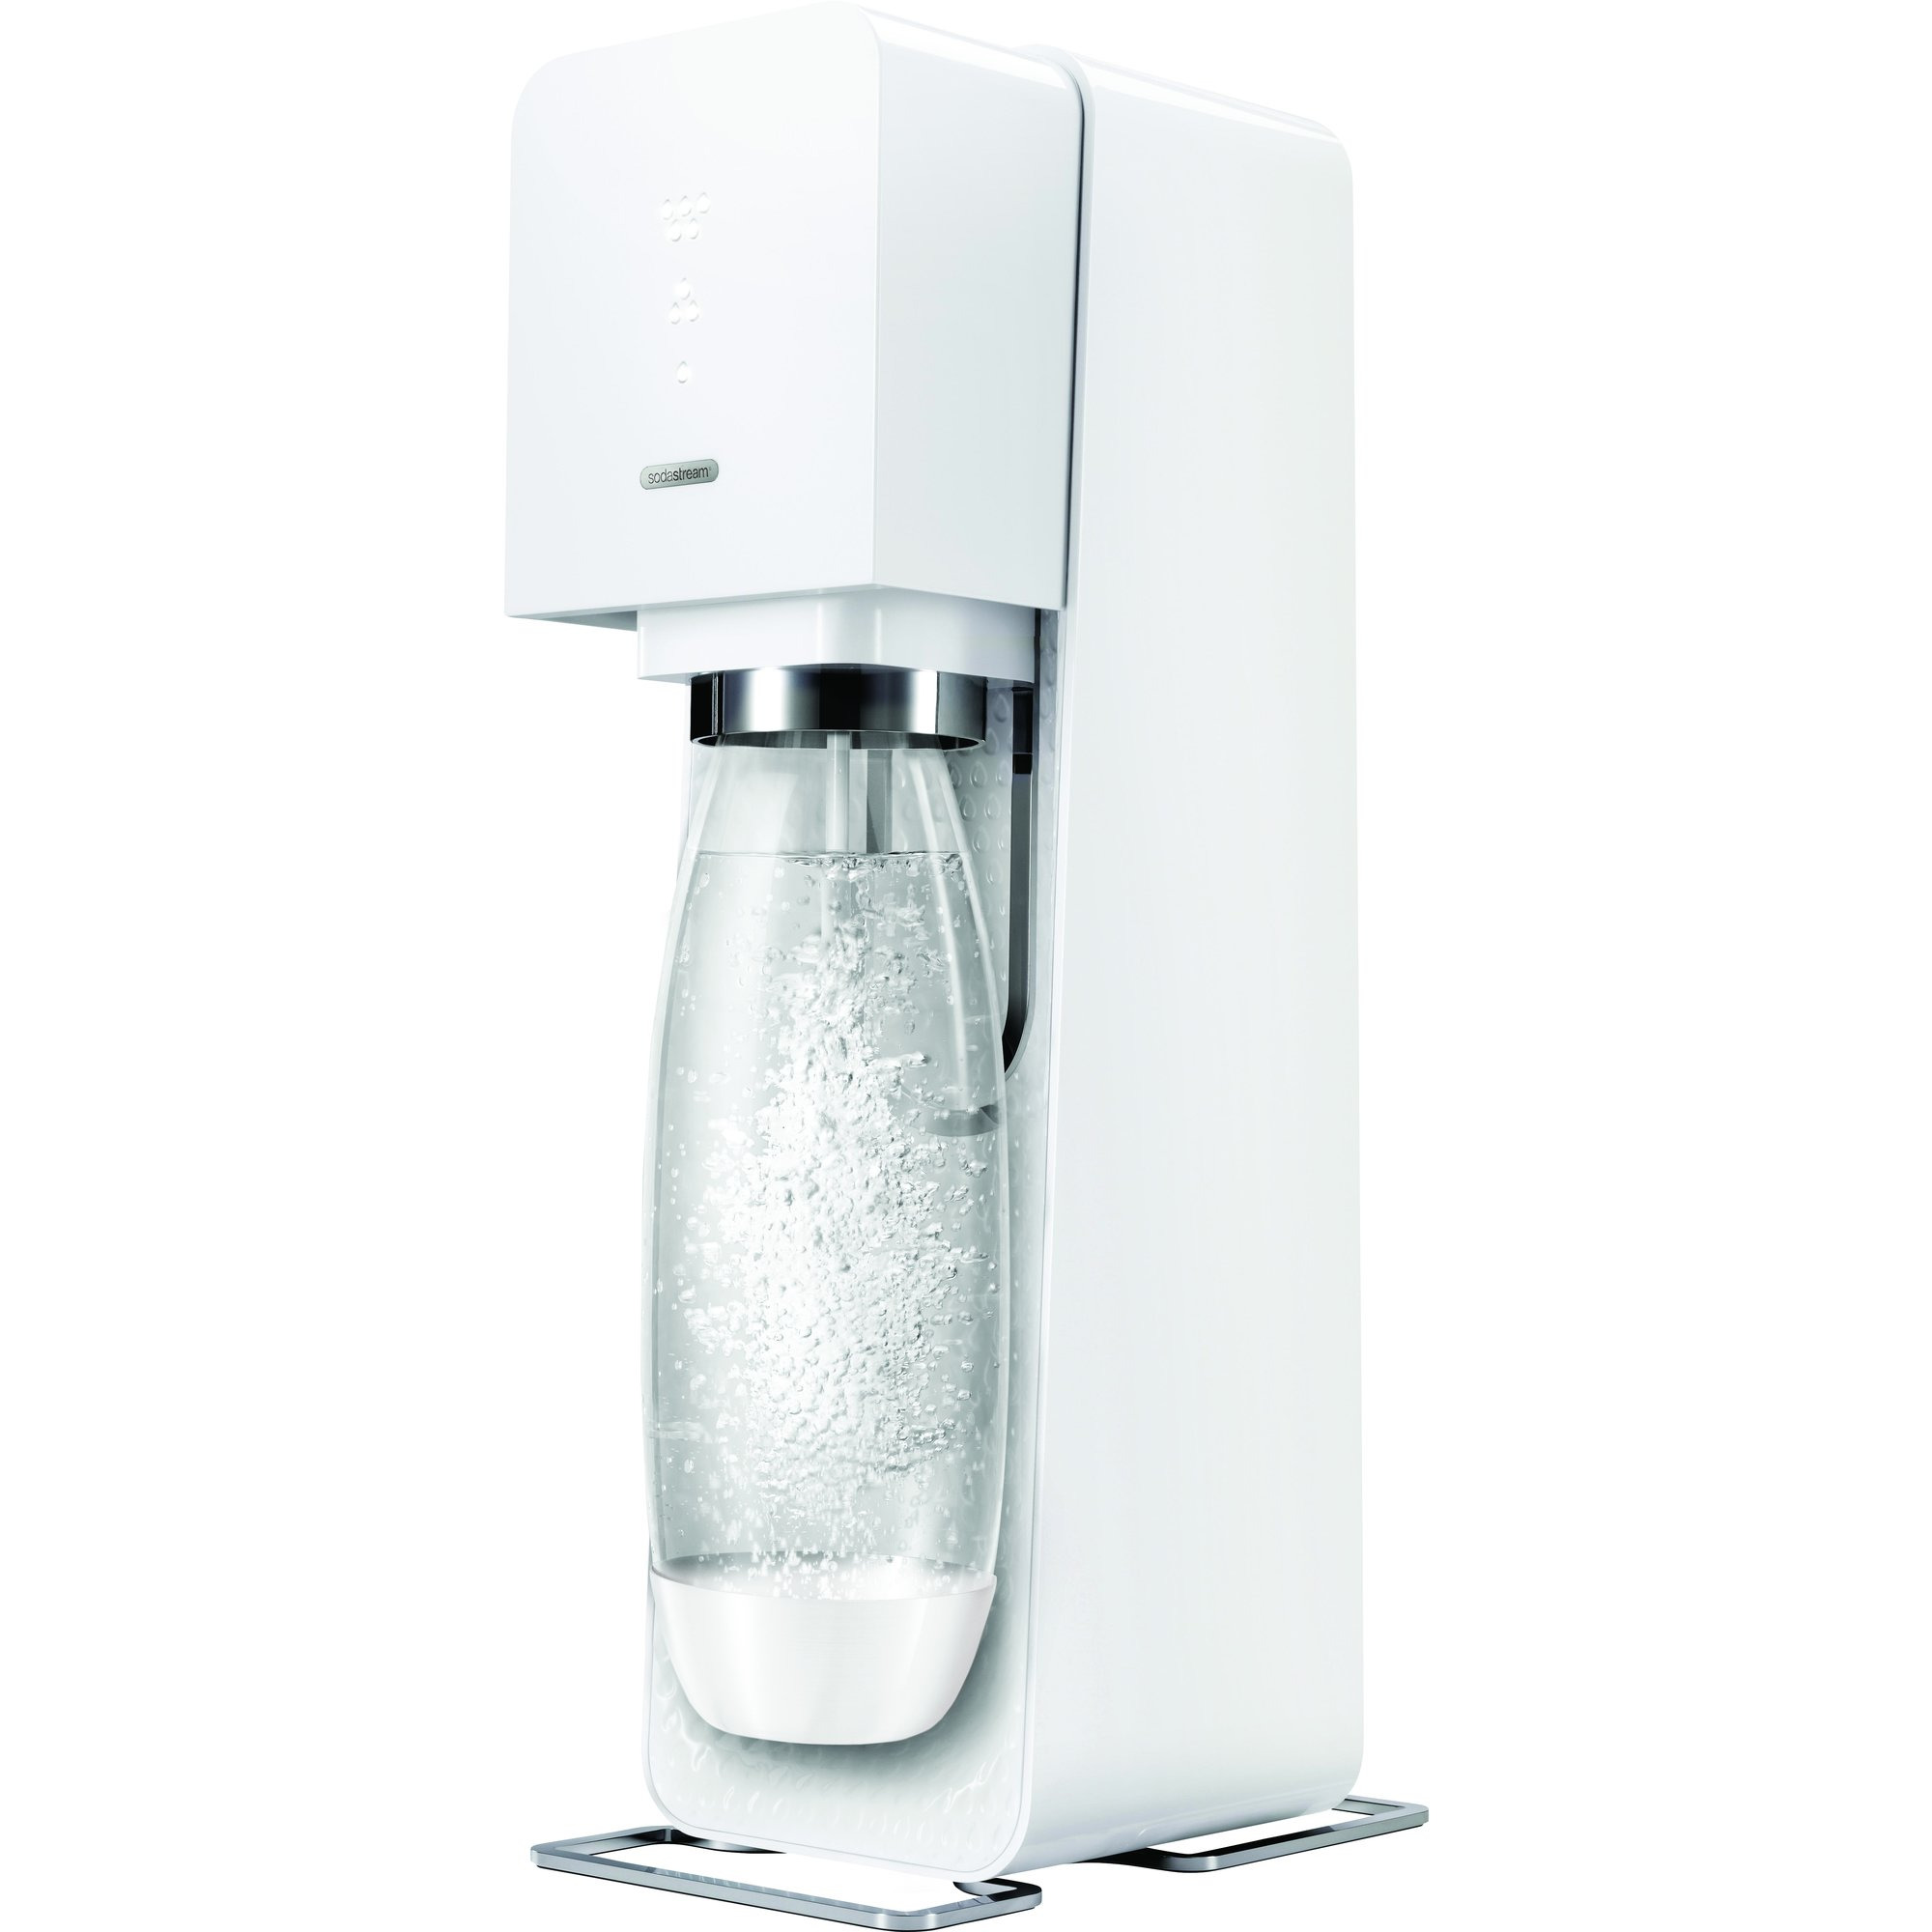 SodaStream Source Kolsyremaskin Vit